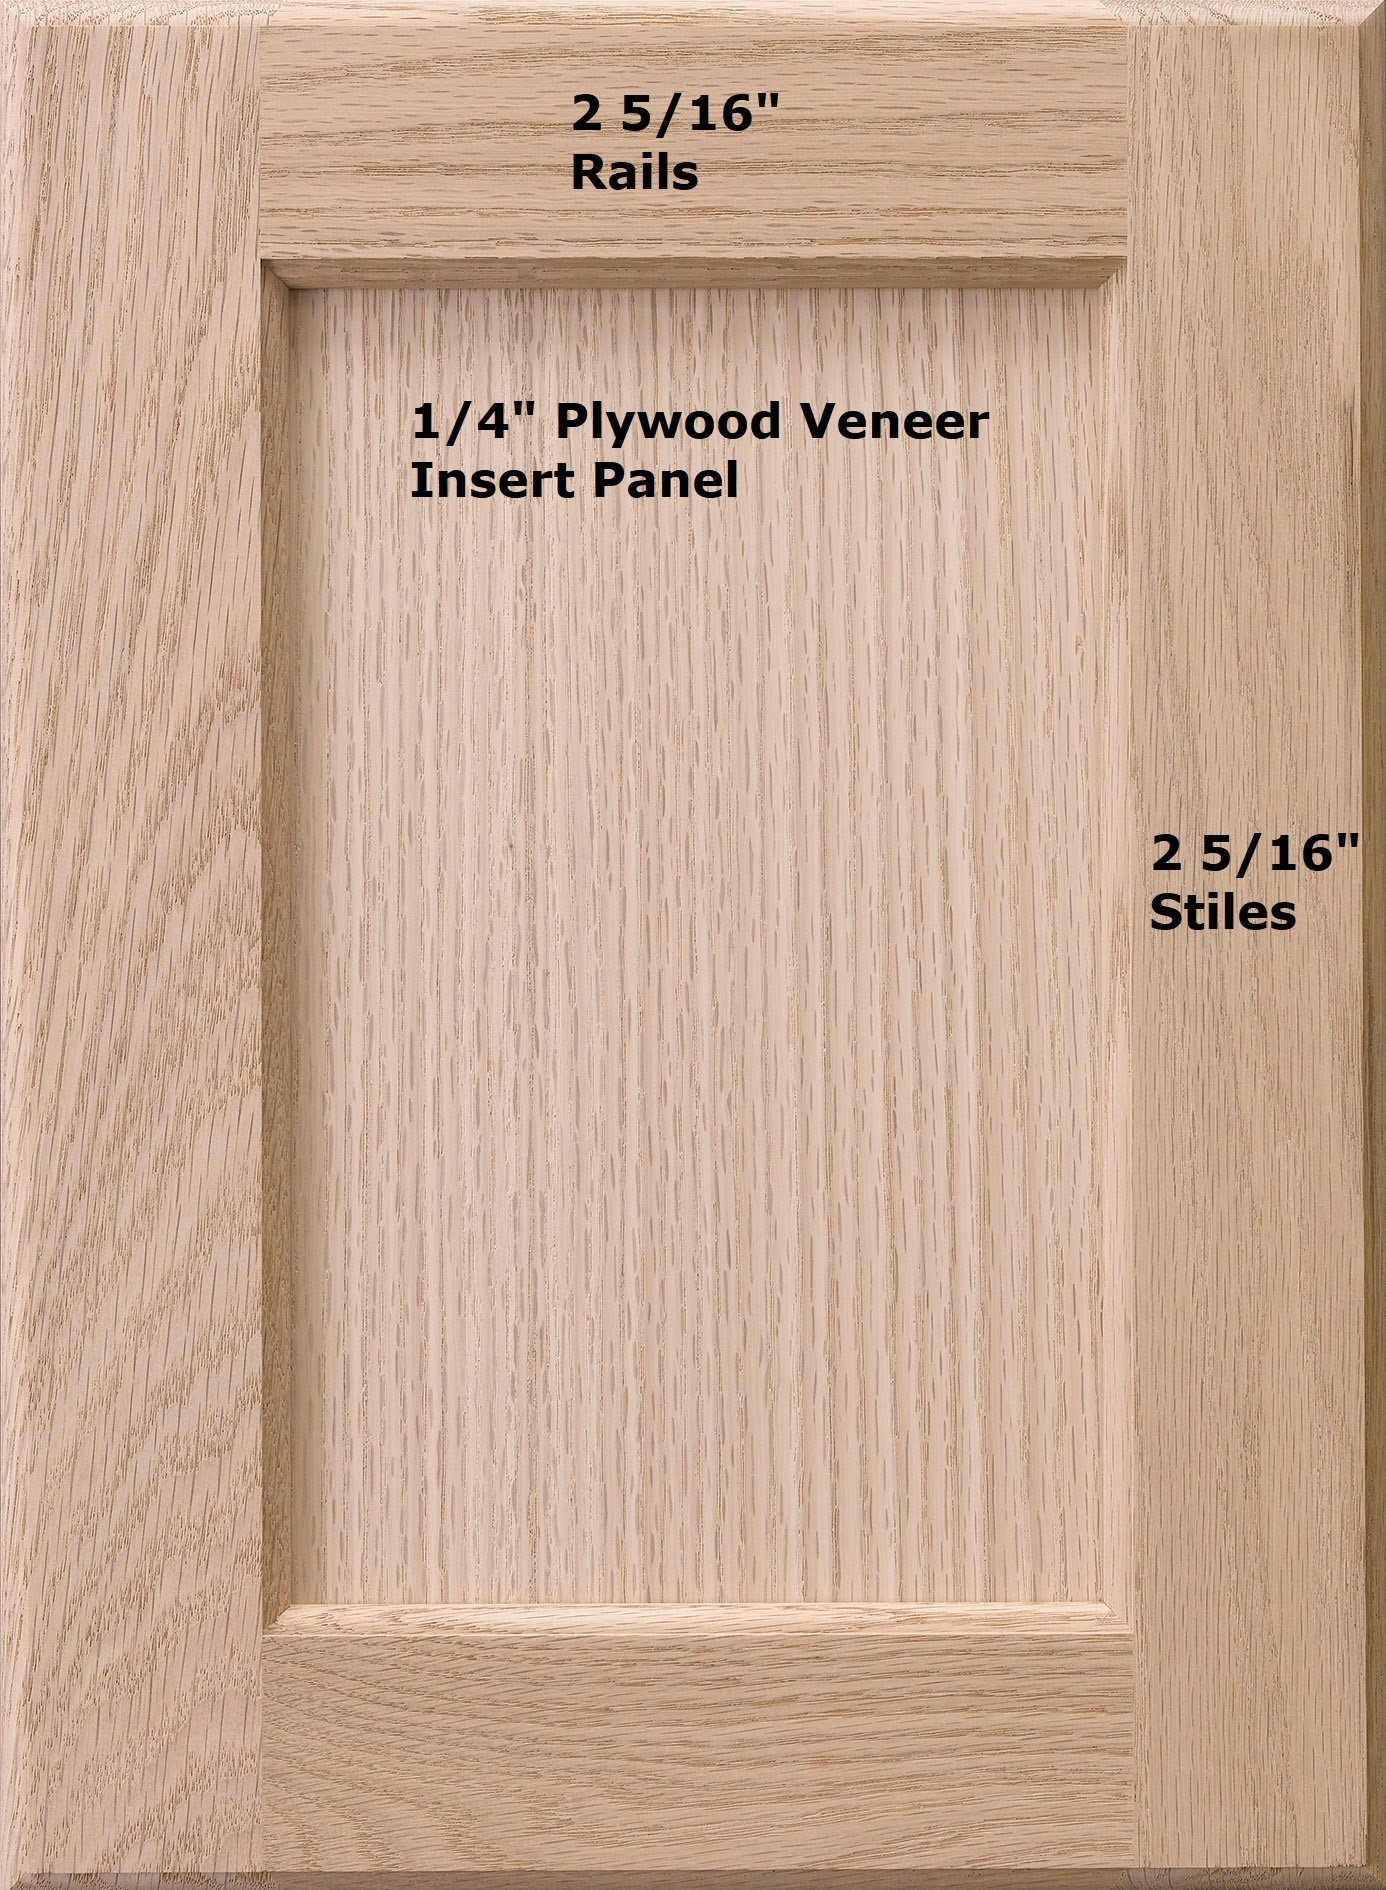 Cabinet Doors 'N' More 13'' x 22'' Unfinished Red Oak Recess Panel Kitchen Cabinet Door